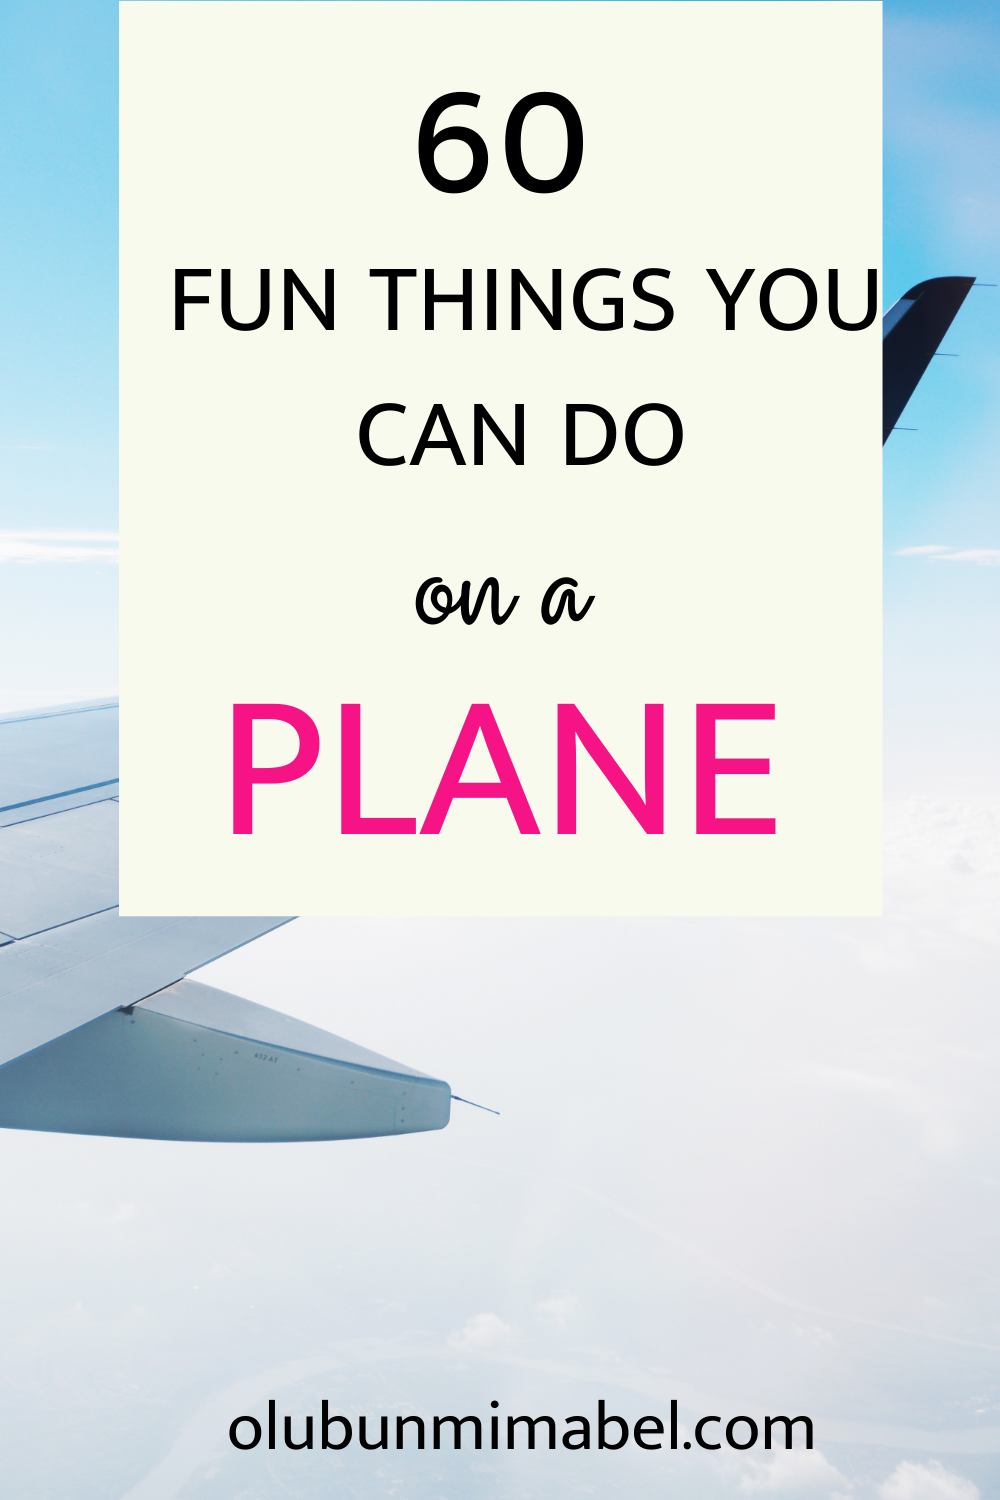 60+ List of Really Fun Things You Can Do on a Plane